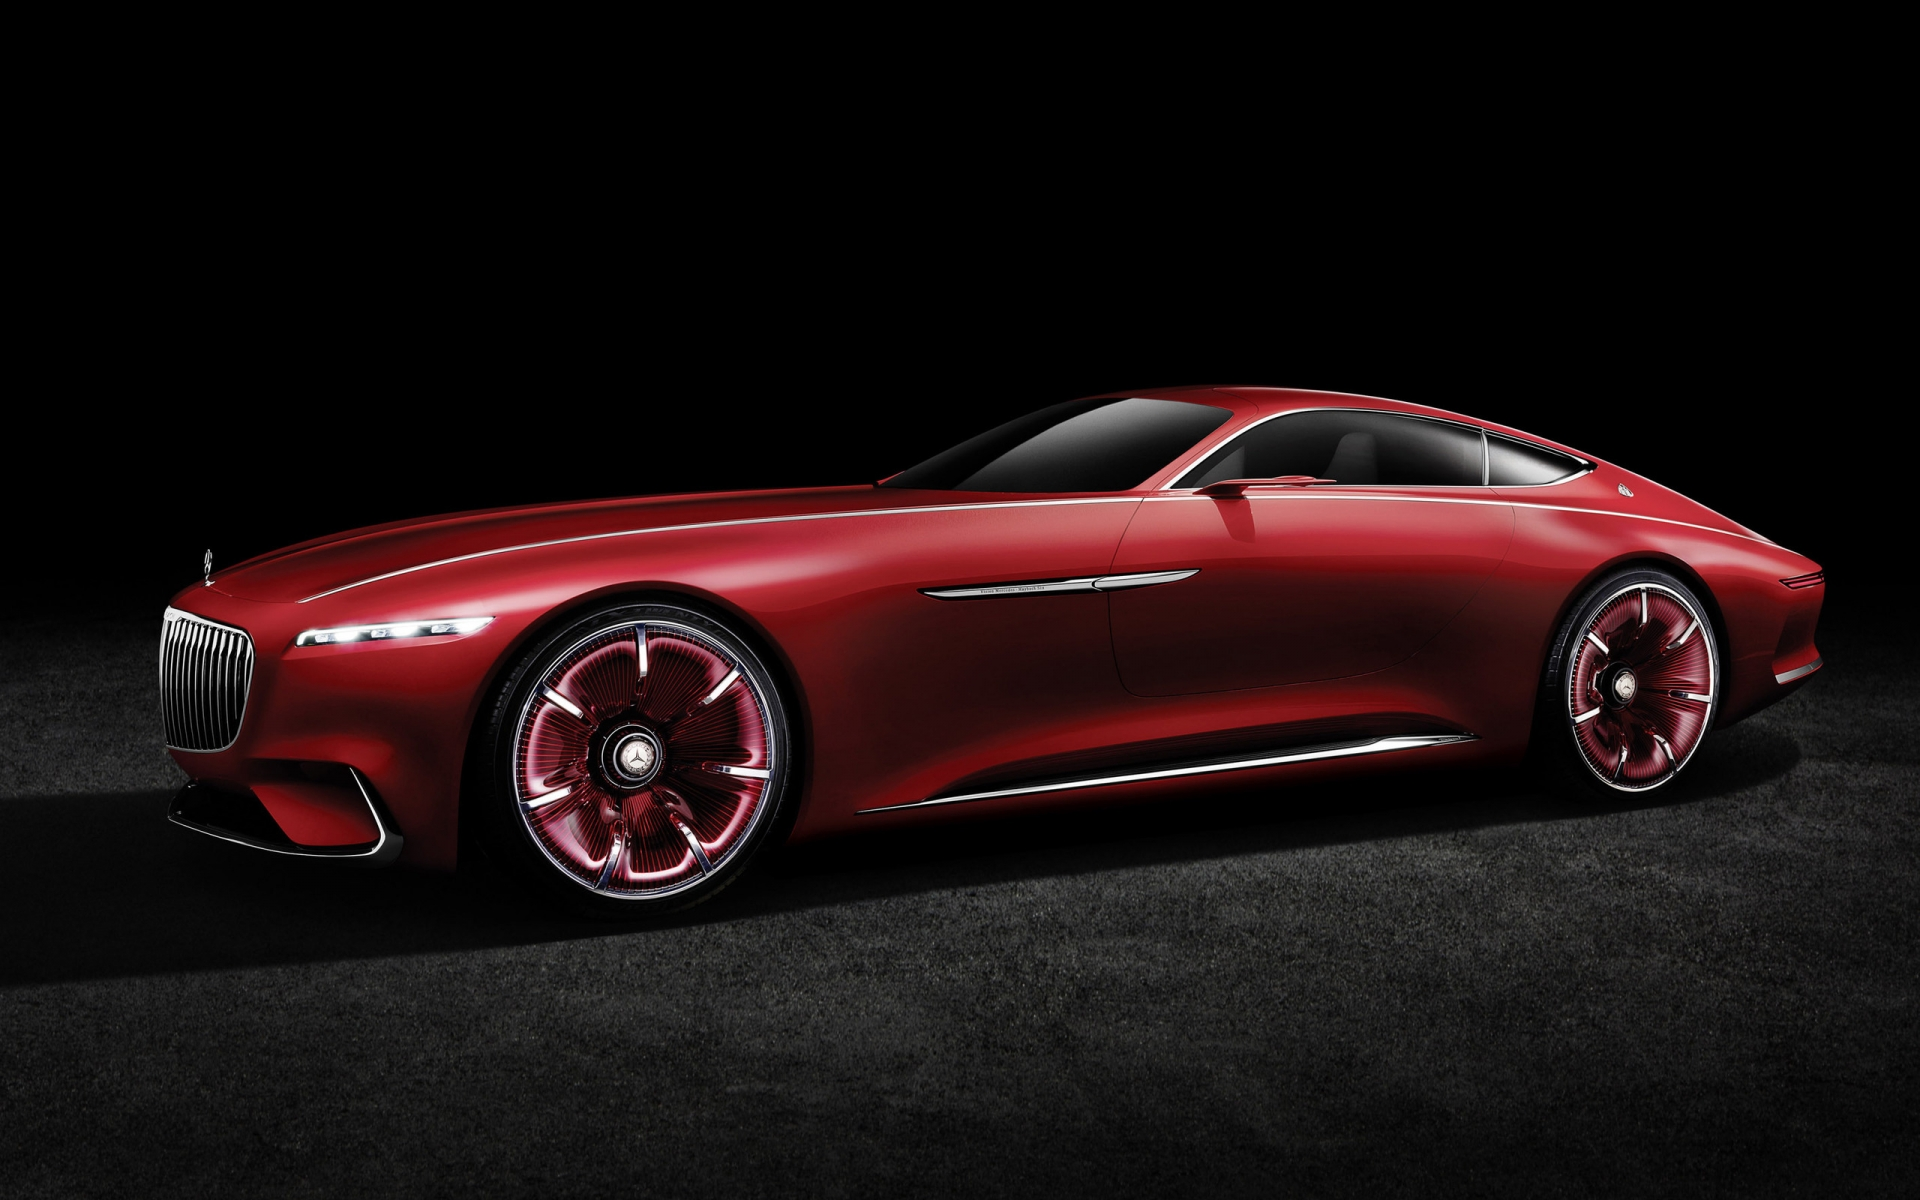 2016 Vision Mercedes Maybach 6 Side View for 1920 x 1200 widescreen resolution